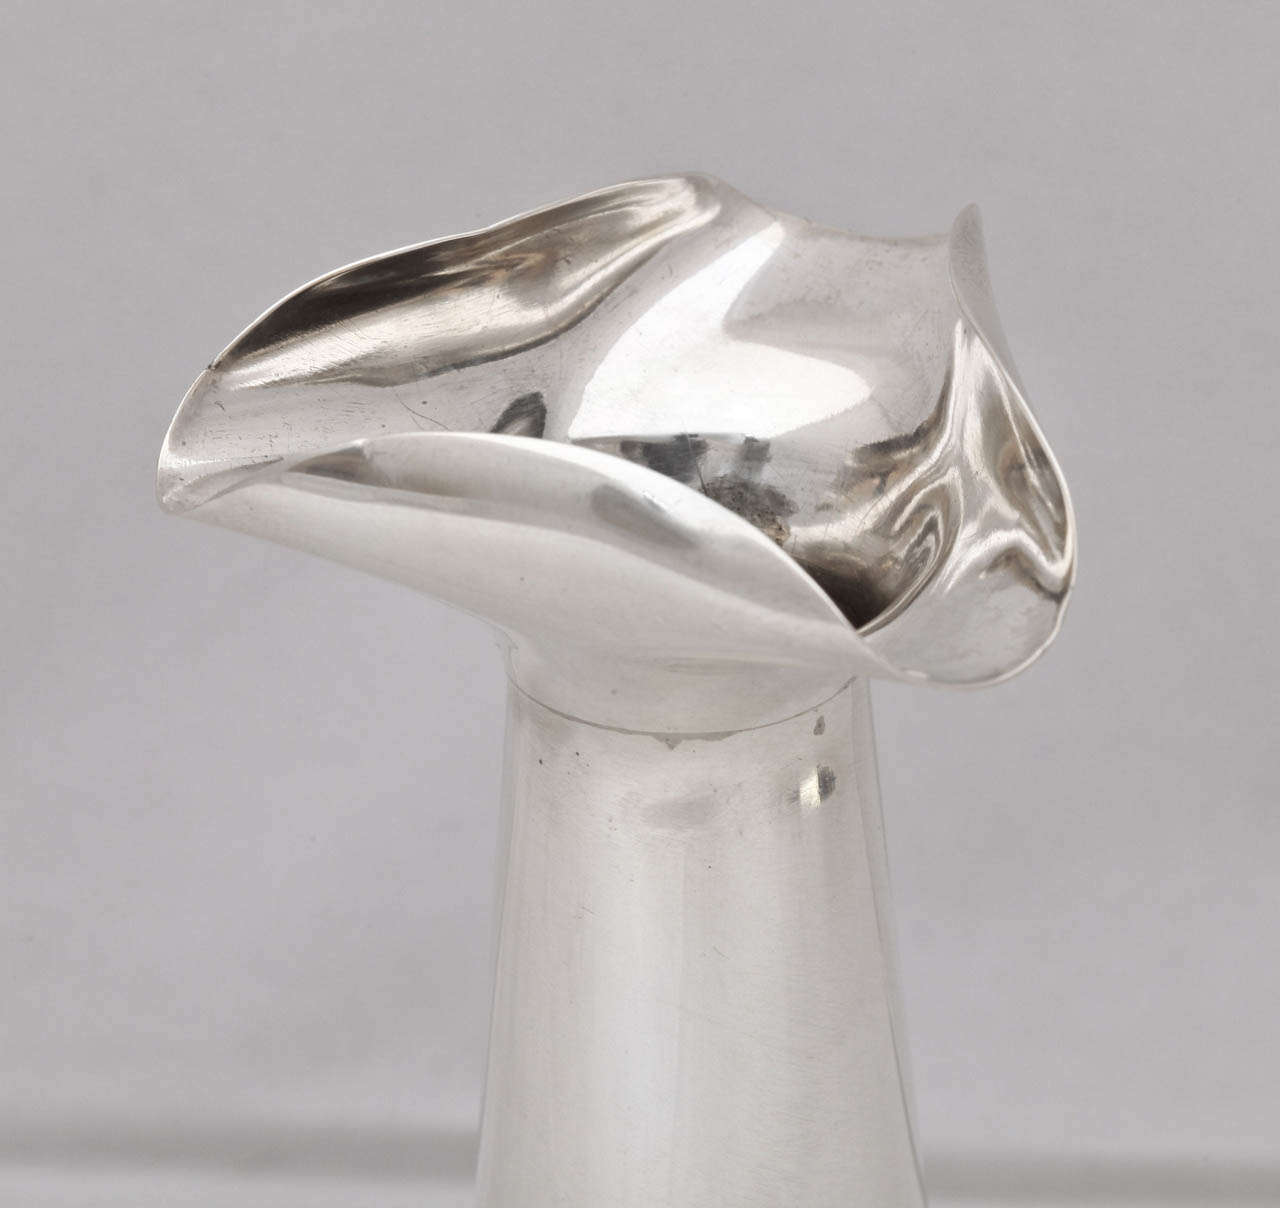 20th Century Unusual Sterling Silver Edwardian Bud Vase For Sale